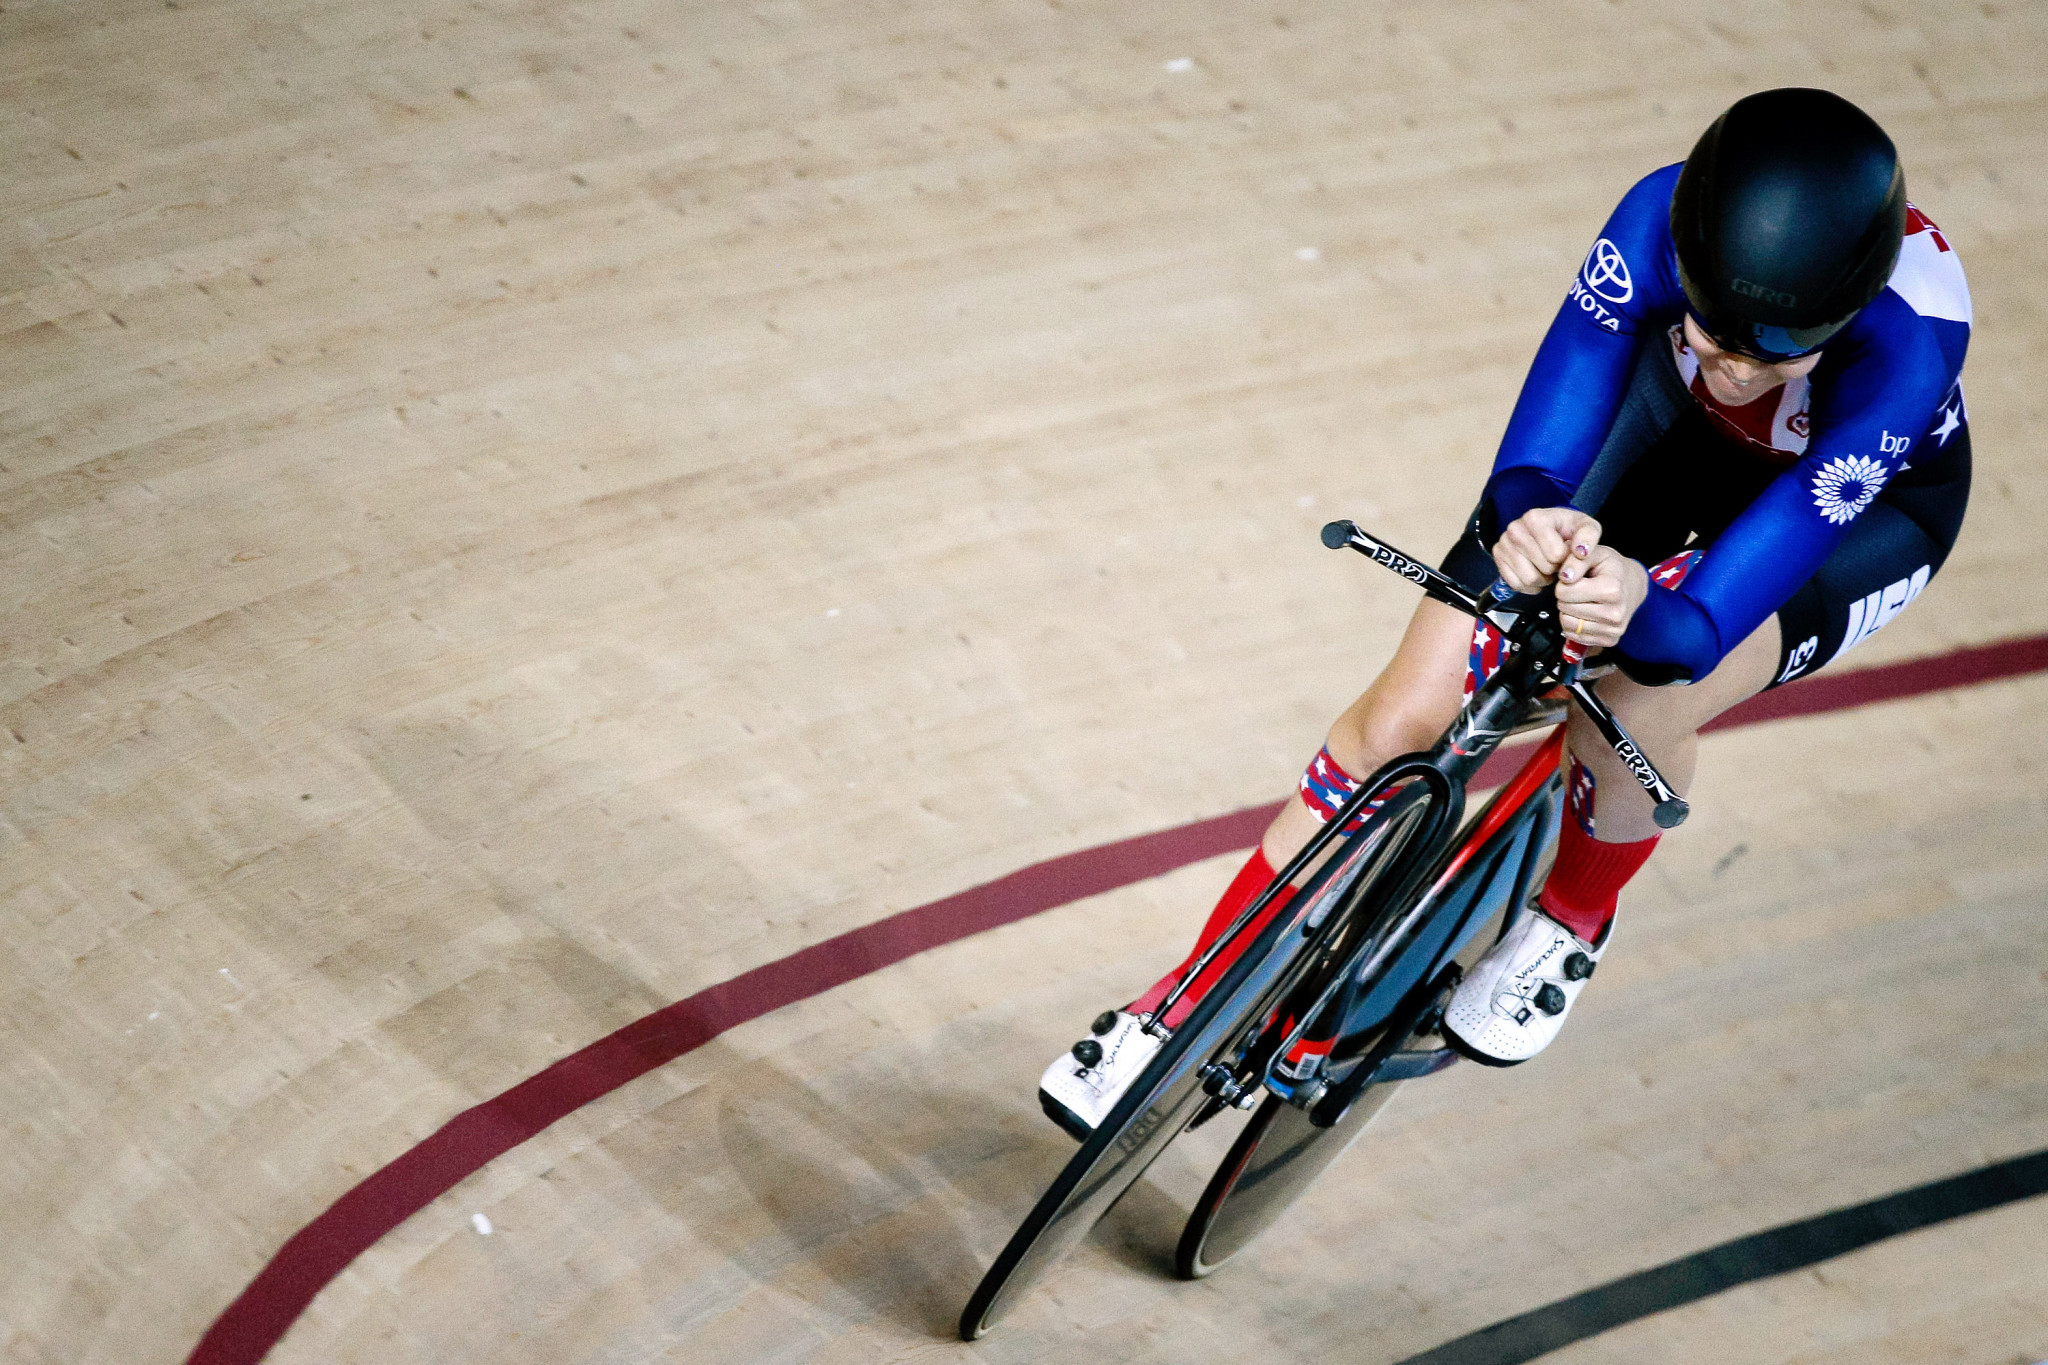 United States shine as track cycling begins at Lima 2019 Parapan American Games